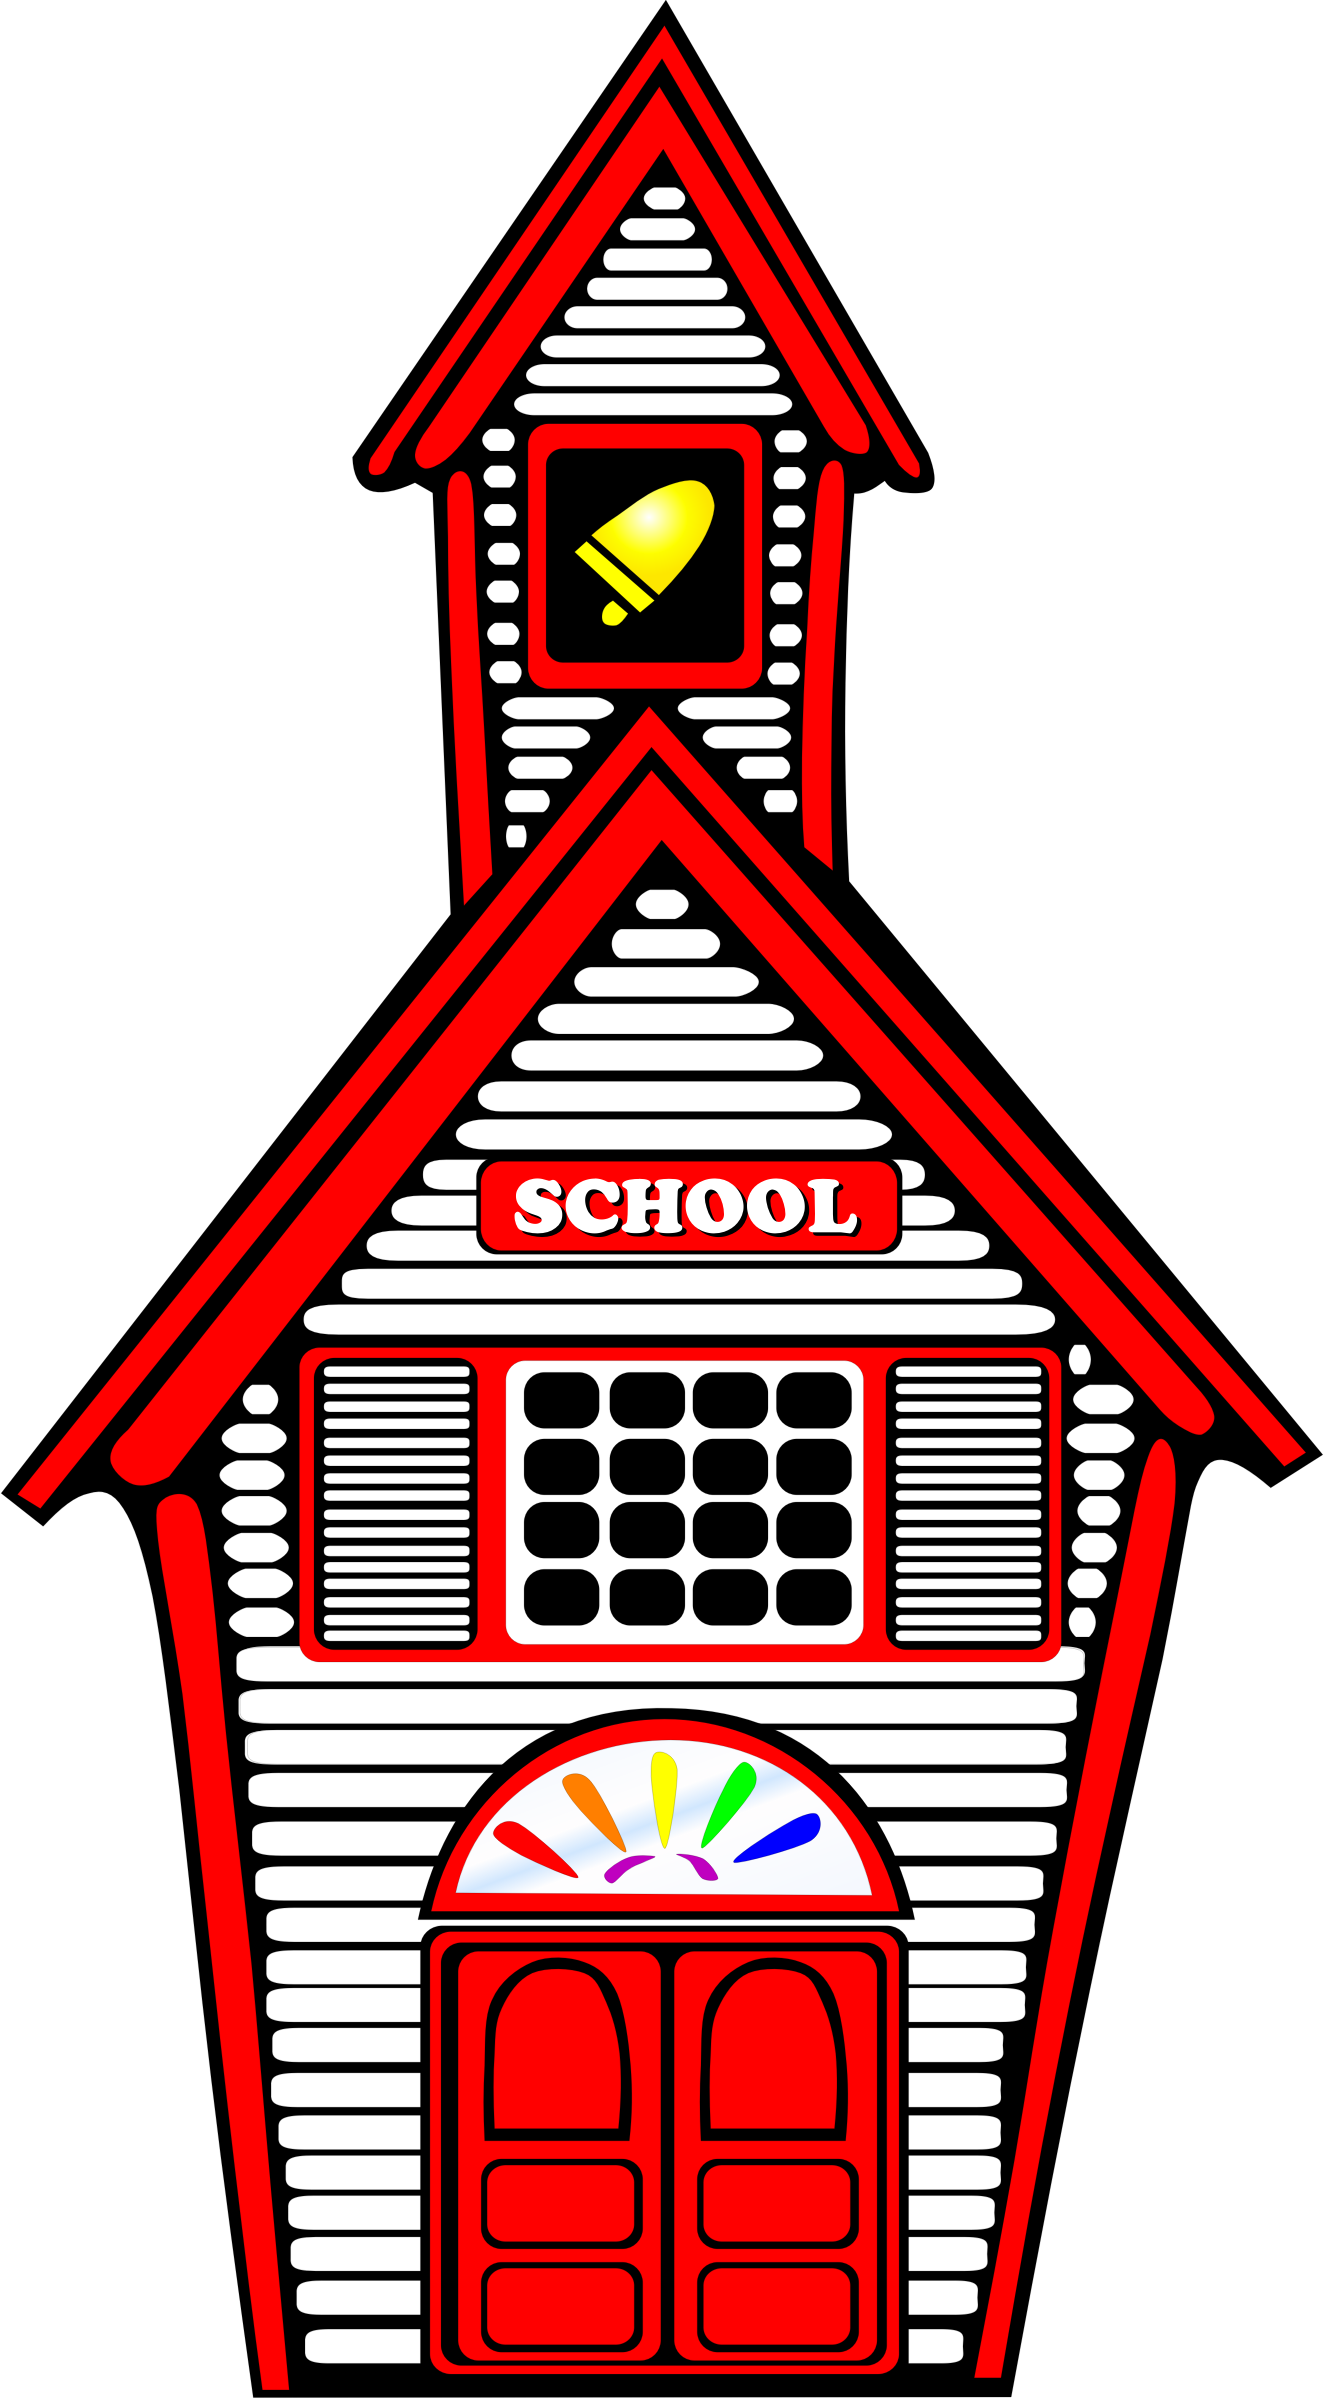 School house png. Image asset battle for